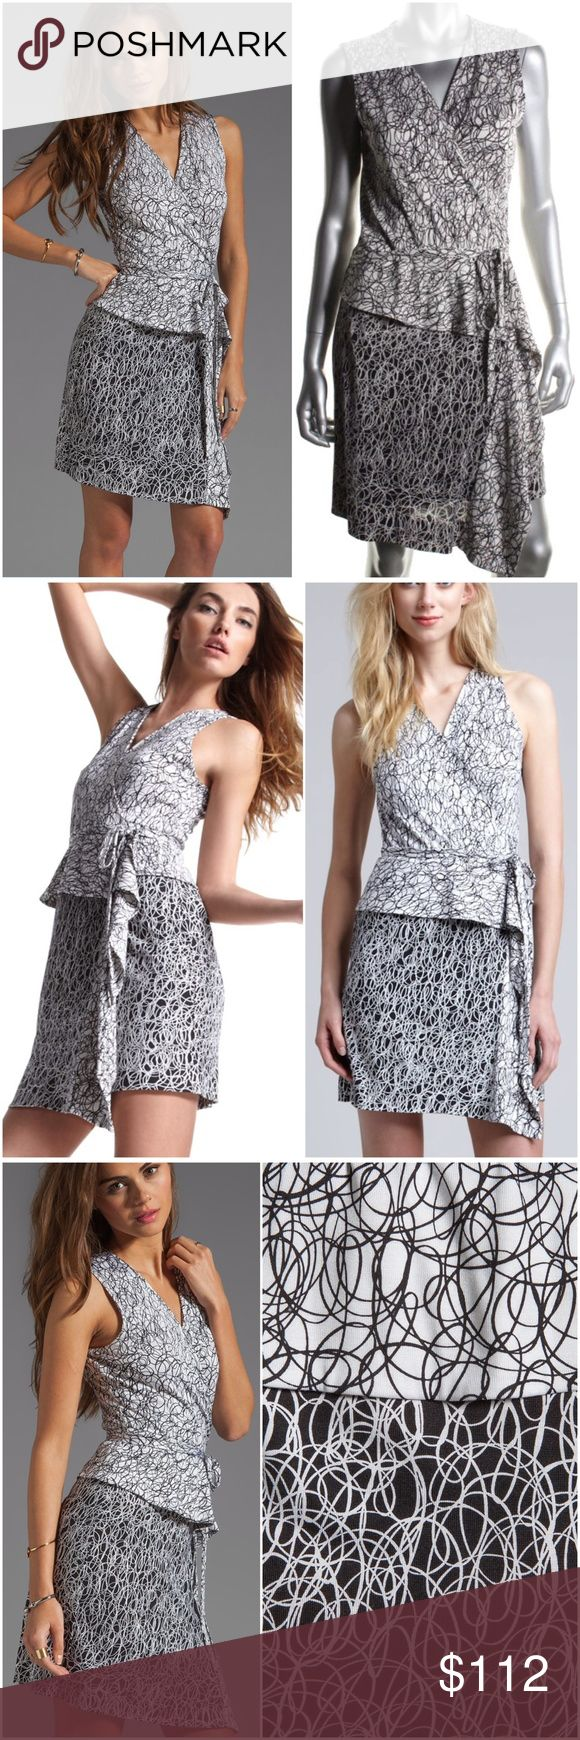 """DVF Diane Von Furstenberg Mililani SILK Wrap Dress RETAIL: $385.00.    Diane Von Furstenberg Mililani Black White Scribble Print 100% SILK Wrap Dress 100% Silk A-Line Sleeveless Tie Closure Knee-Length  New Without Tags; Store Display; In excellent condition! 💥SIZE:⬇️⬇️ ➡️(FLAW: Missing manufacturer size tag) ⬅️ SEE MEASUREMENTS-- Total Length: 37 1/2"""" Bust Across: 17 1/2"""" Waist Across: 16"""" Diane von Furstenberg Dresses"""